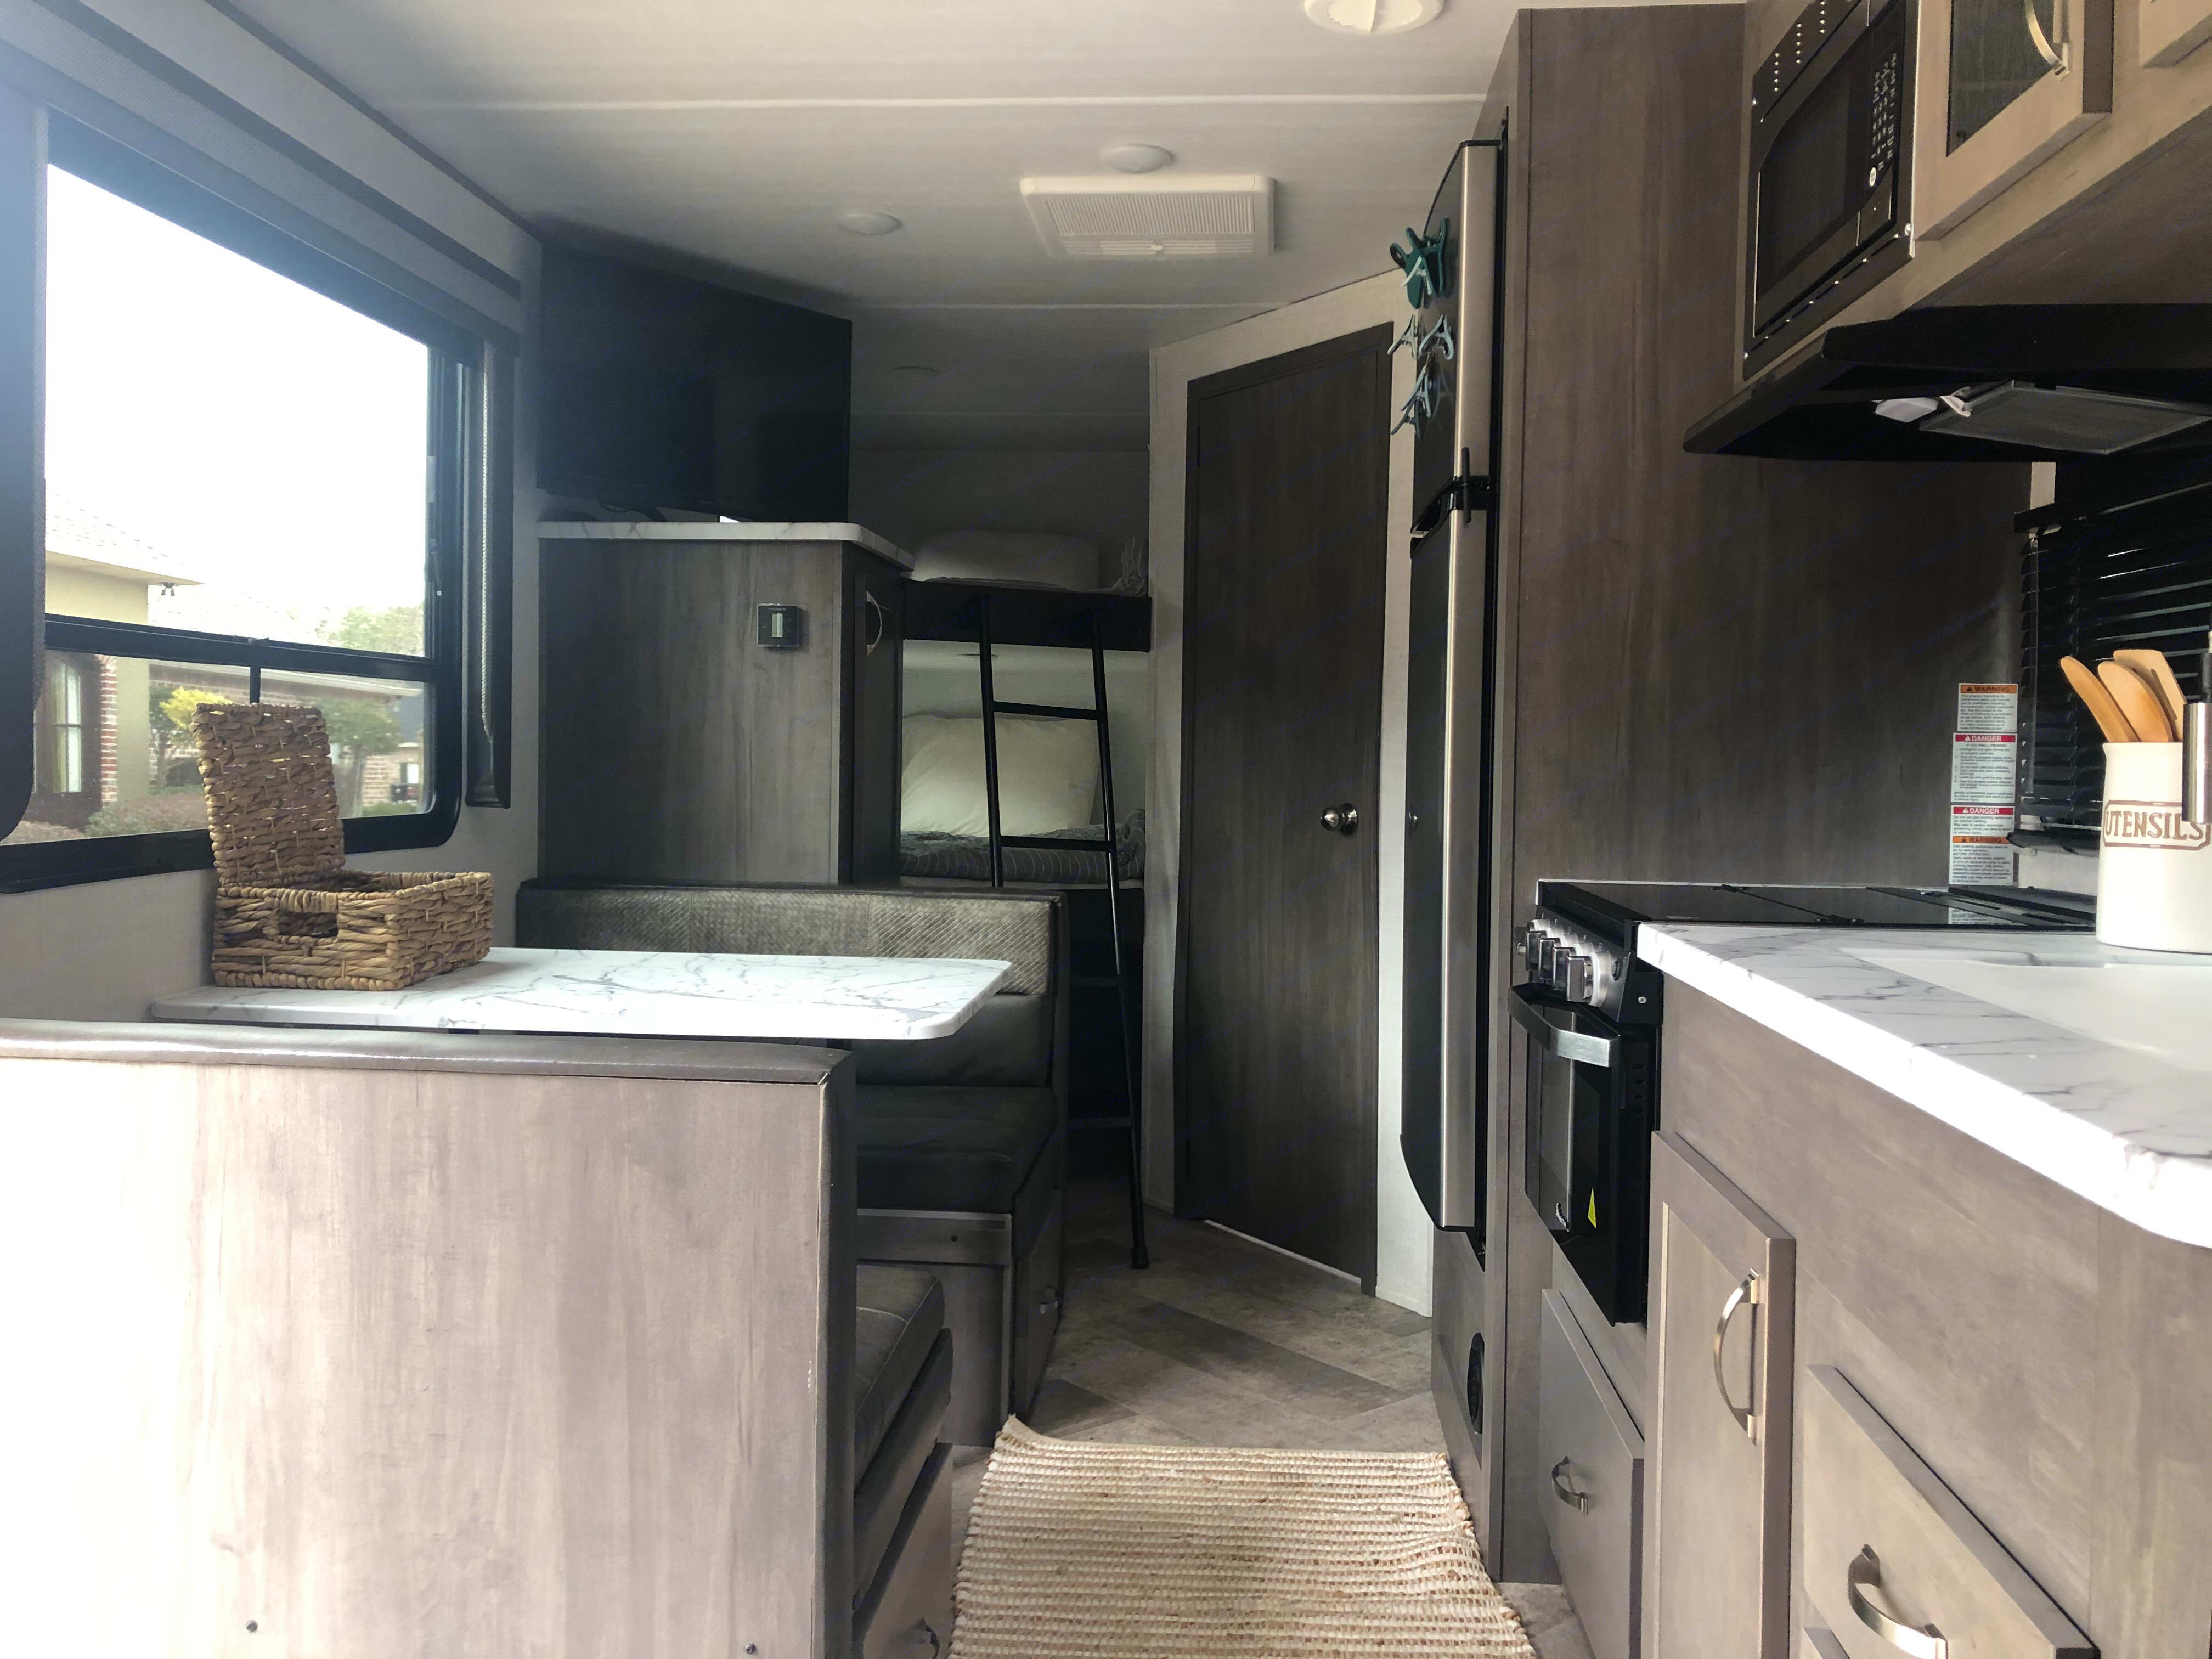 Kitchen with dinette (converts to bed), farmhouse style sink with flexible faucet, full fridge, 3 burner gas stove, and gas oven. Forest River East to West Alta 2021